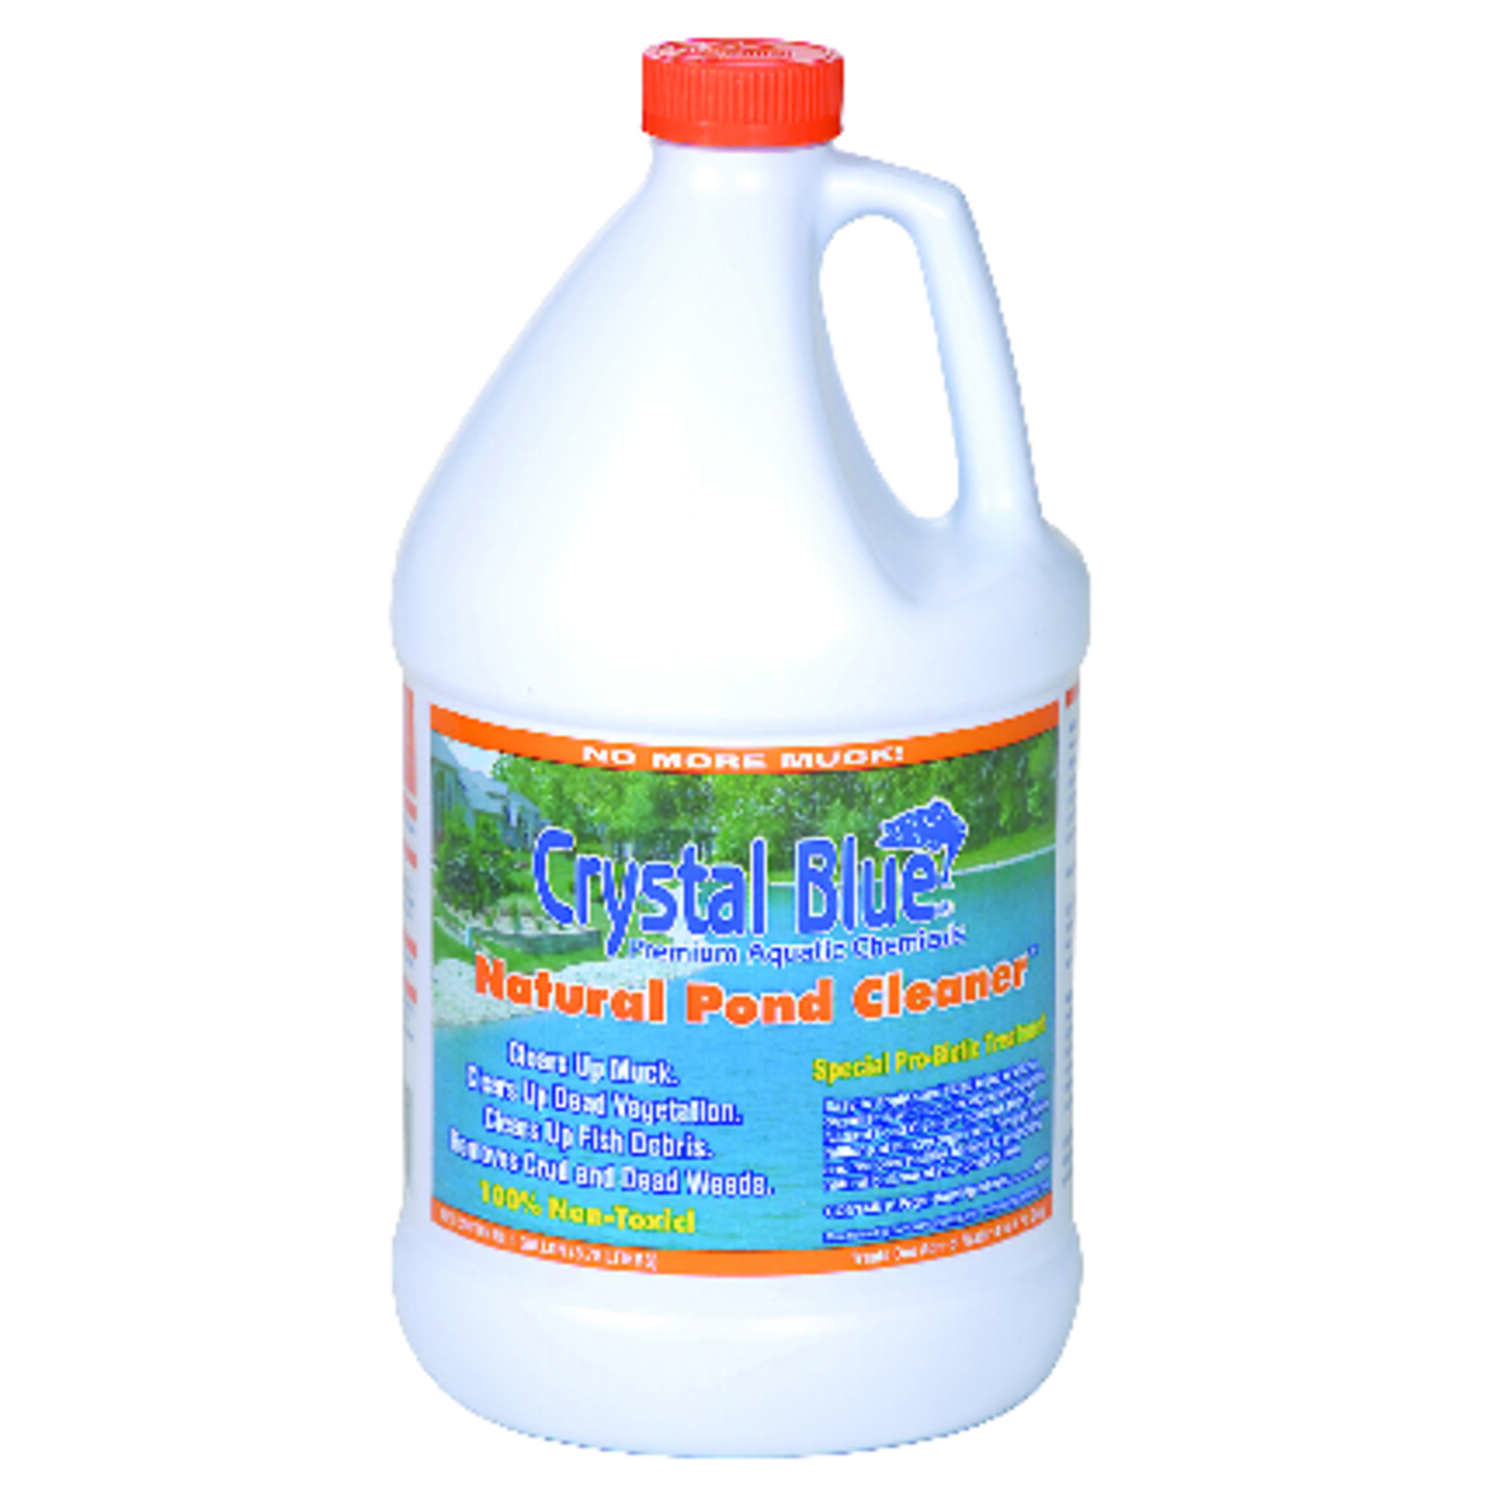 Crystal Blue  Pond Cleaner  128 oz.